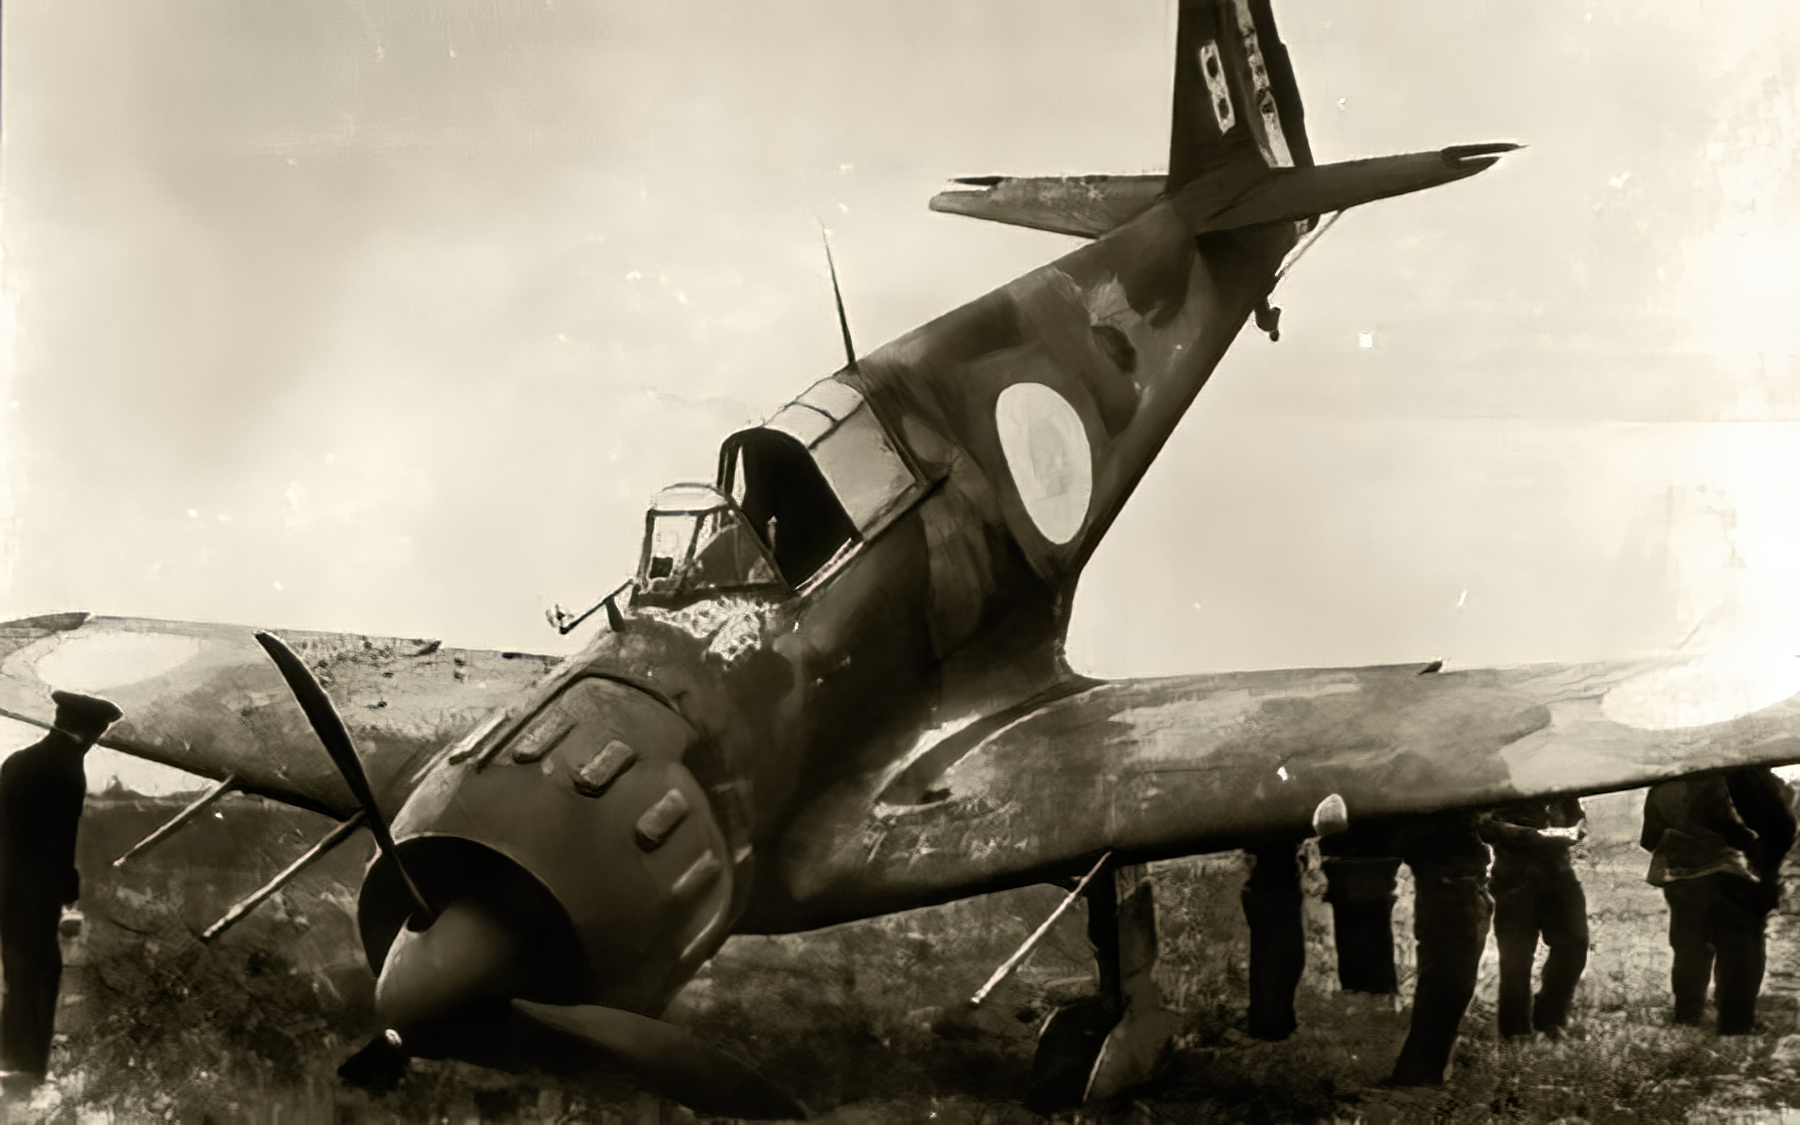 French Airforce Bloch MB 152 White 8 landing mishap Battle of France May 1940 ebay 01